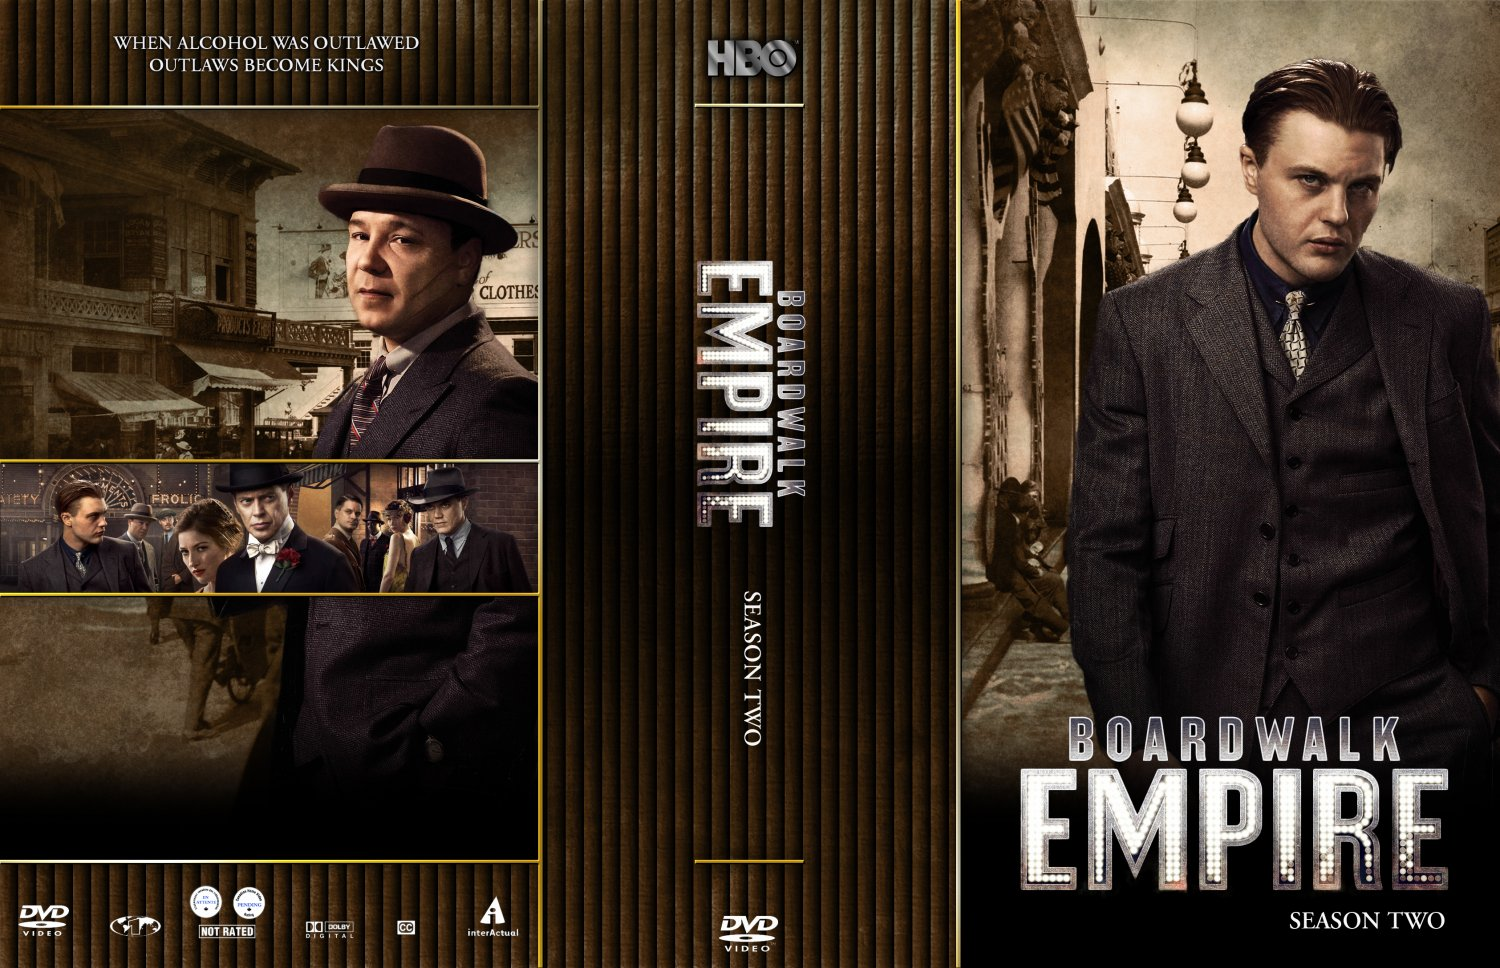 Photos Boardwalk Empire Boardwalk Empire Season 2